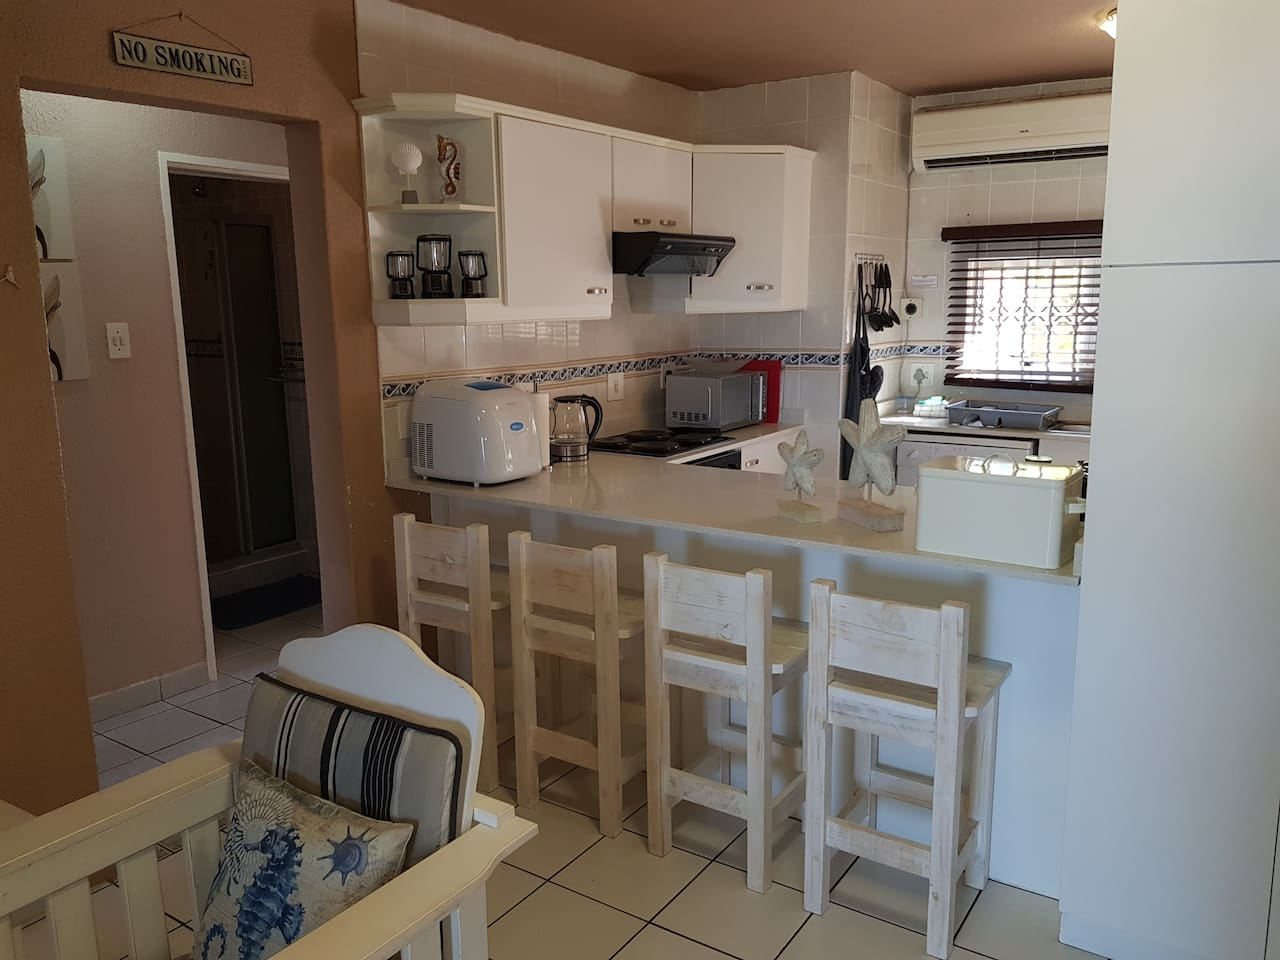 The kitchen is well equipped with a large fridge, oven & extractor fan, dishwasher, microwave, ice machine, etc.